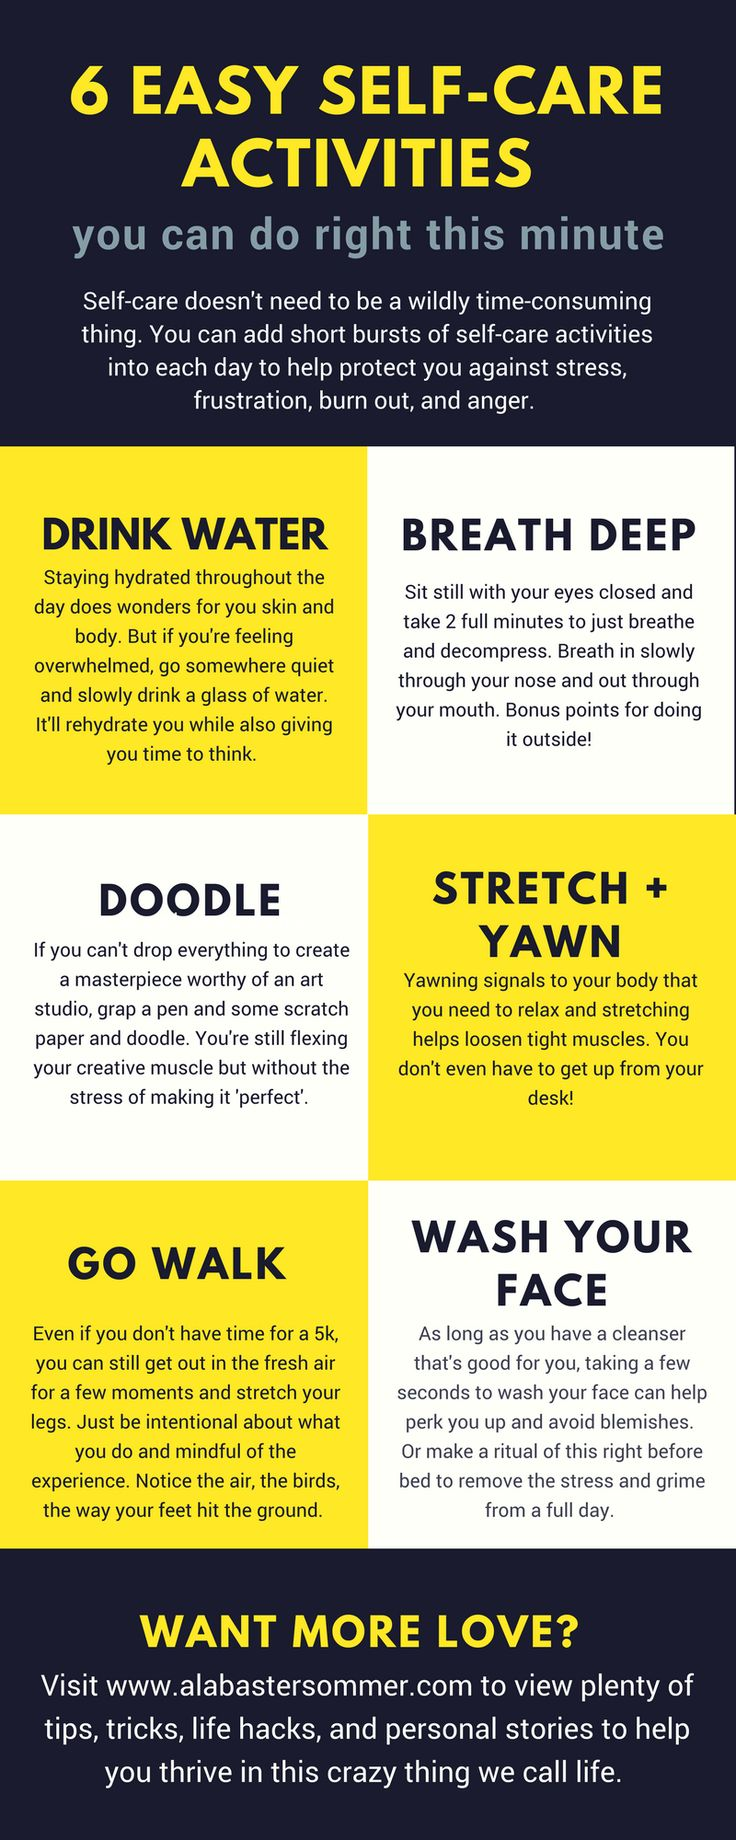 Best 25+ Self care activities ideas on Pinterest | Self ...